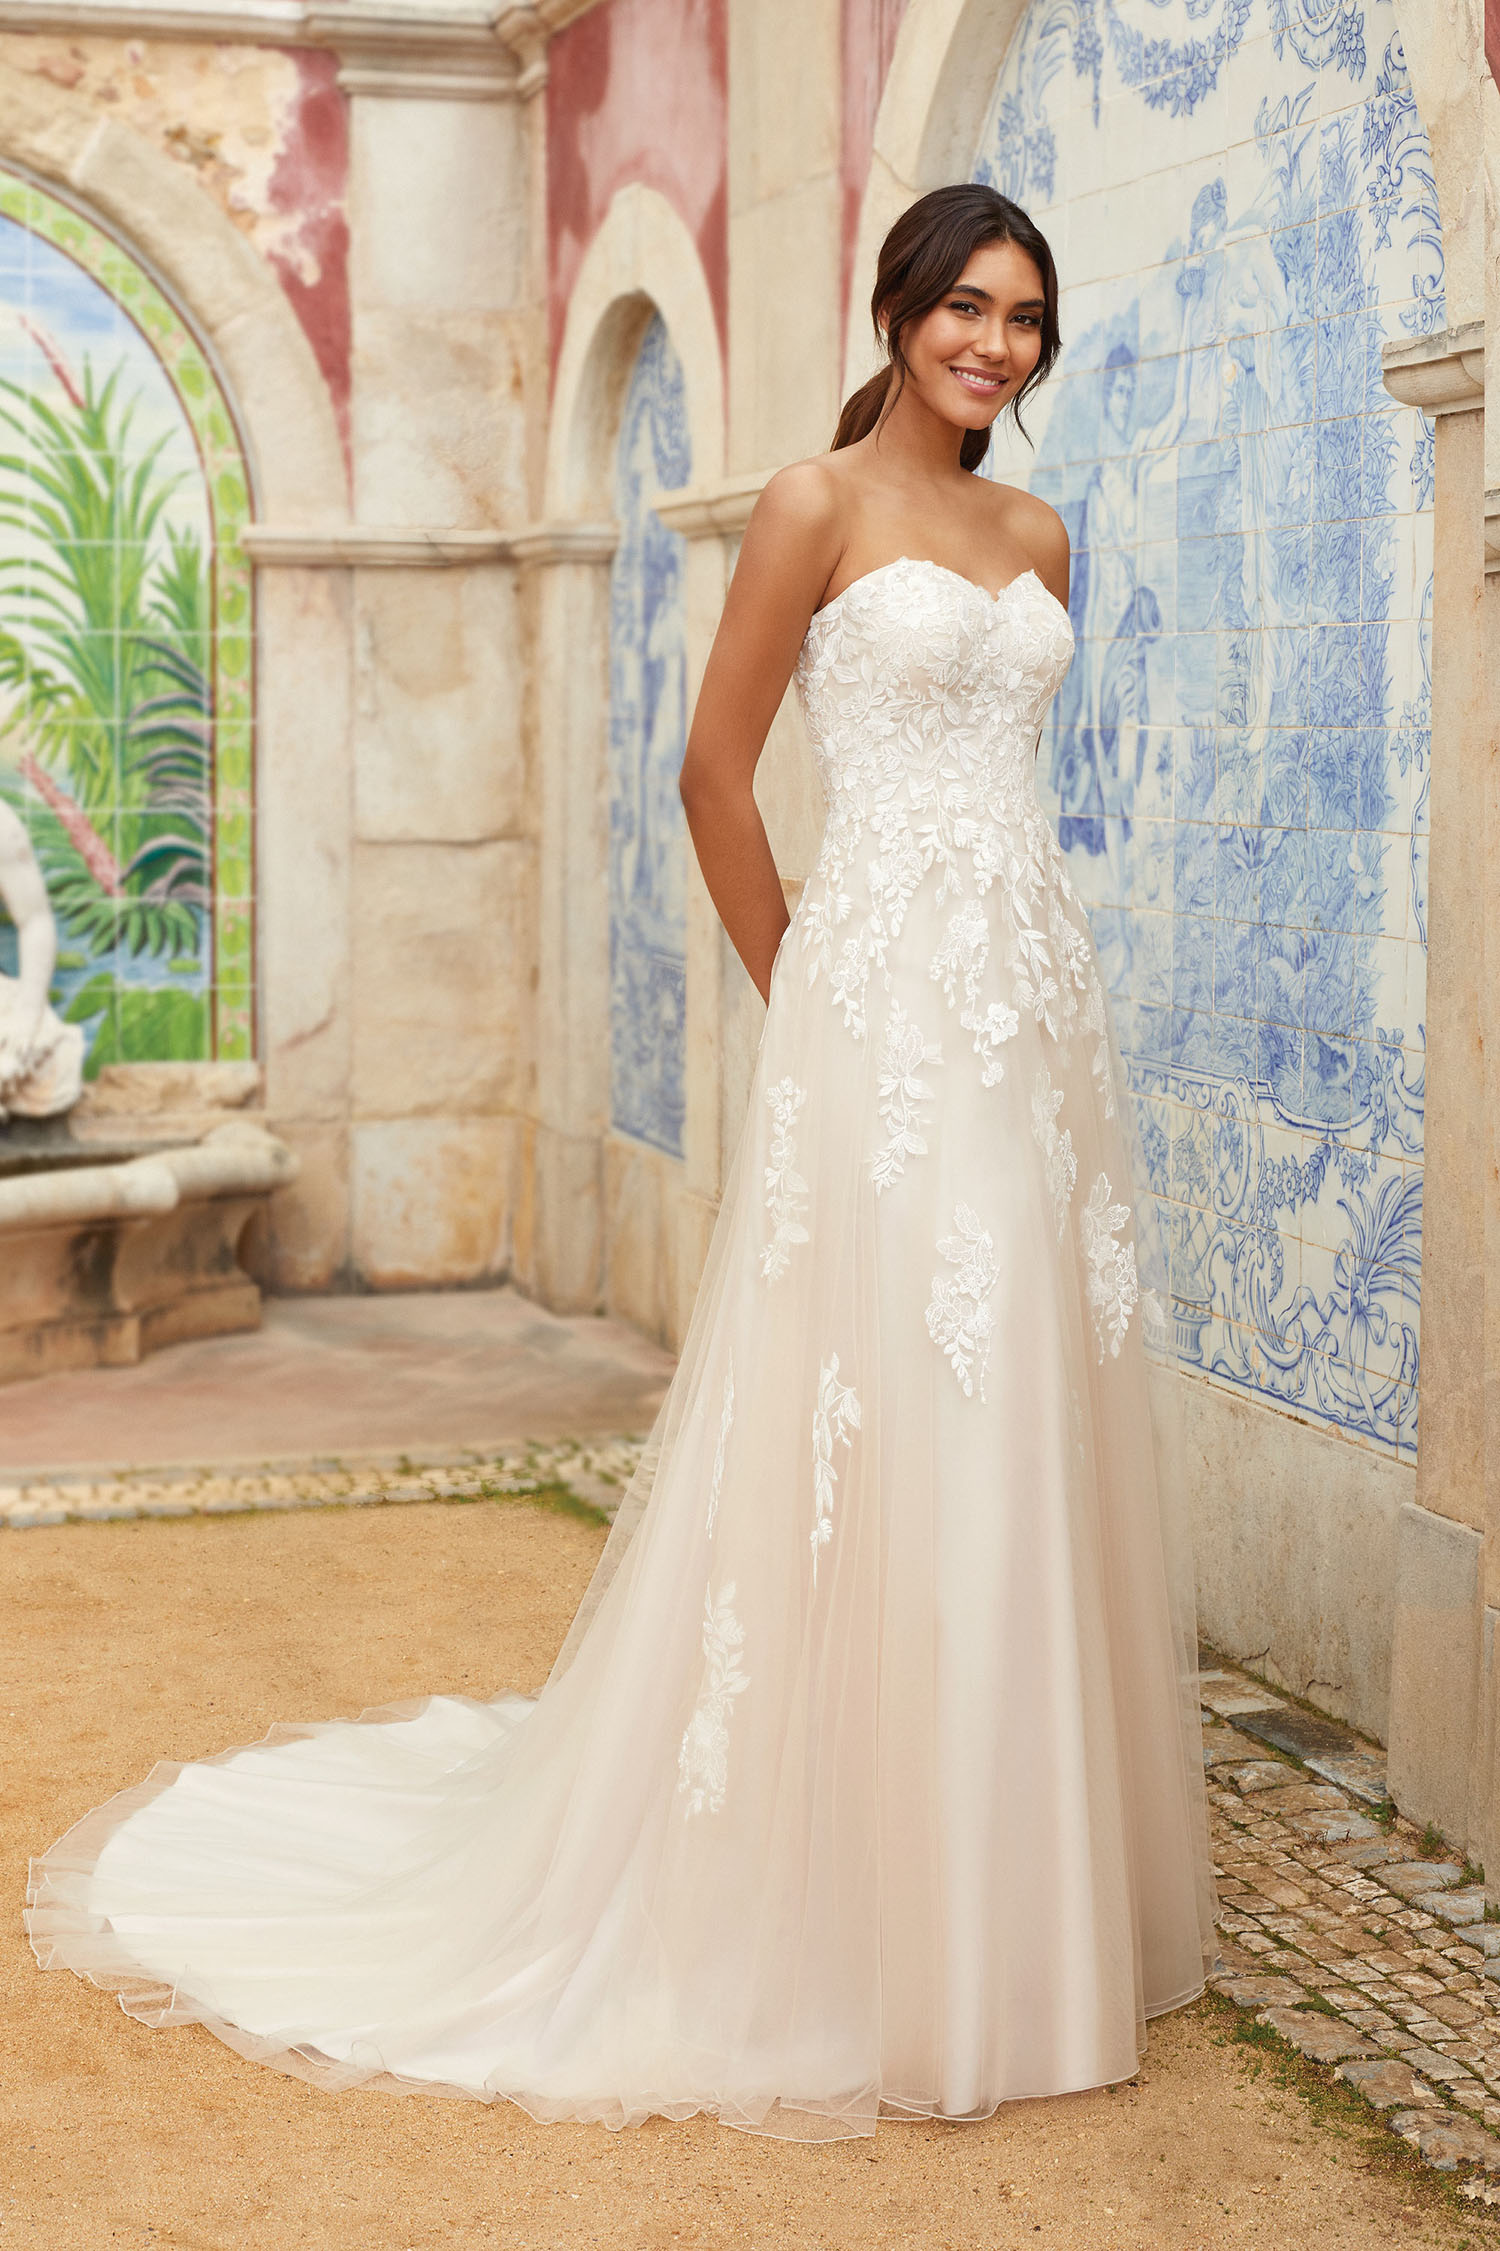 Bride wearing simle fit and flare gown with beaded motifs